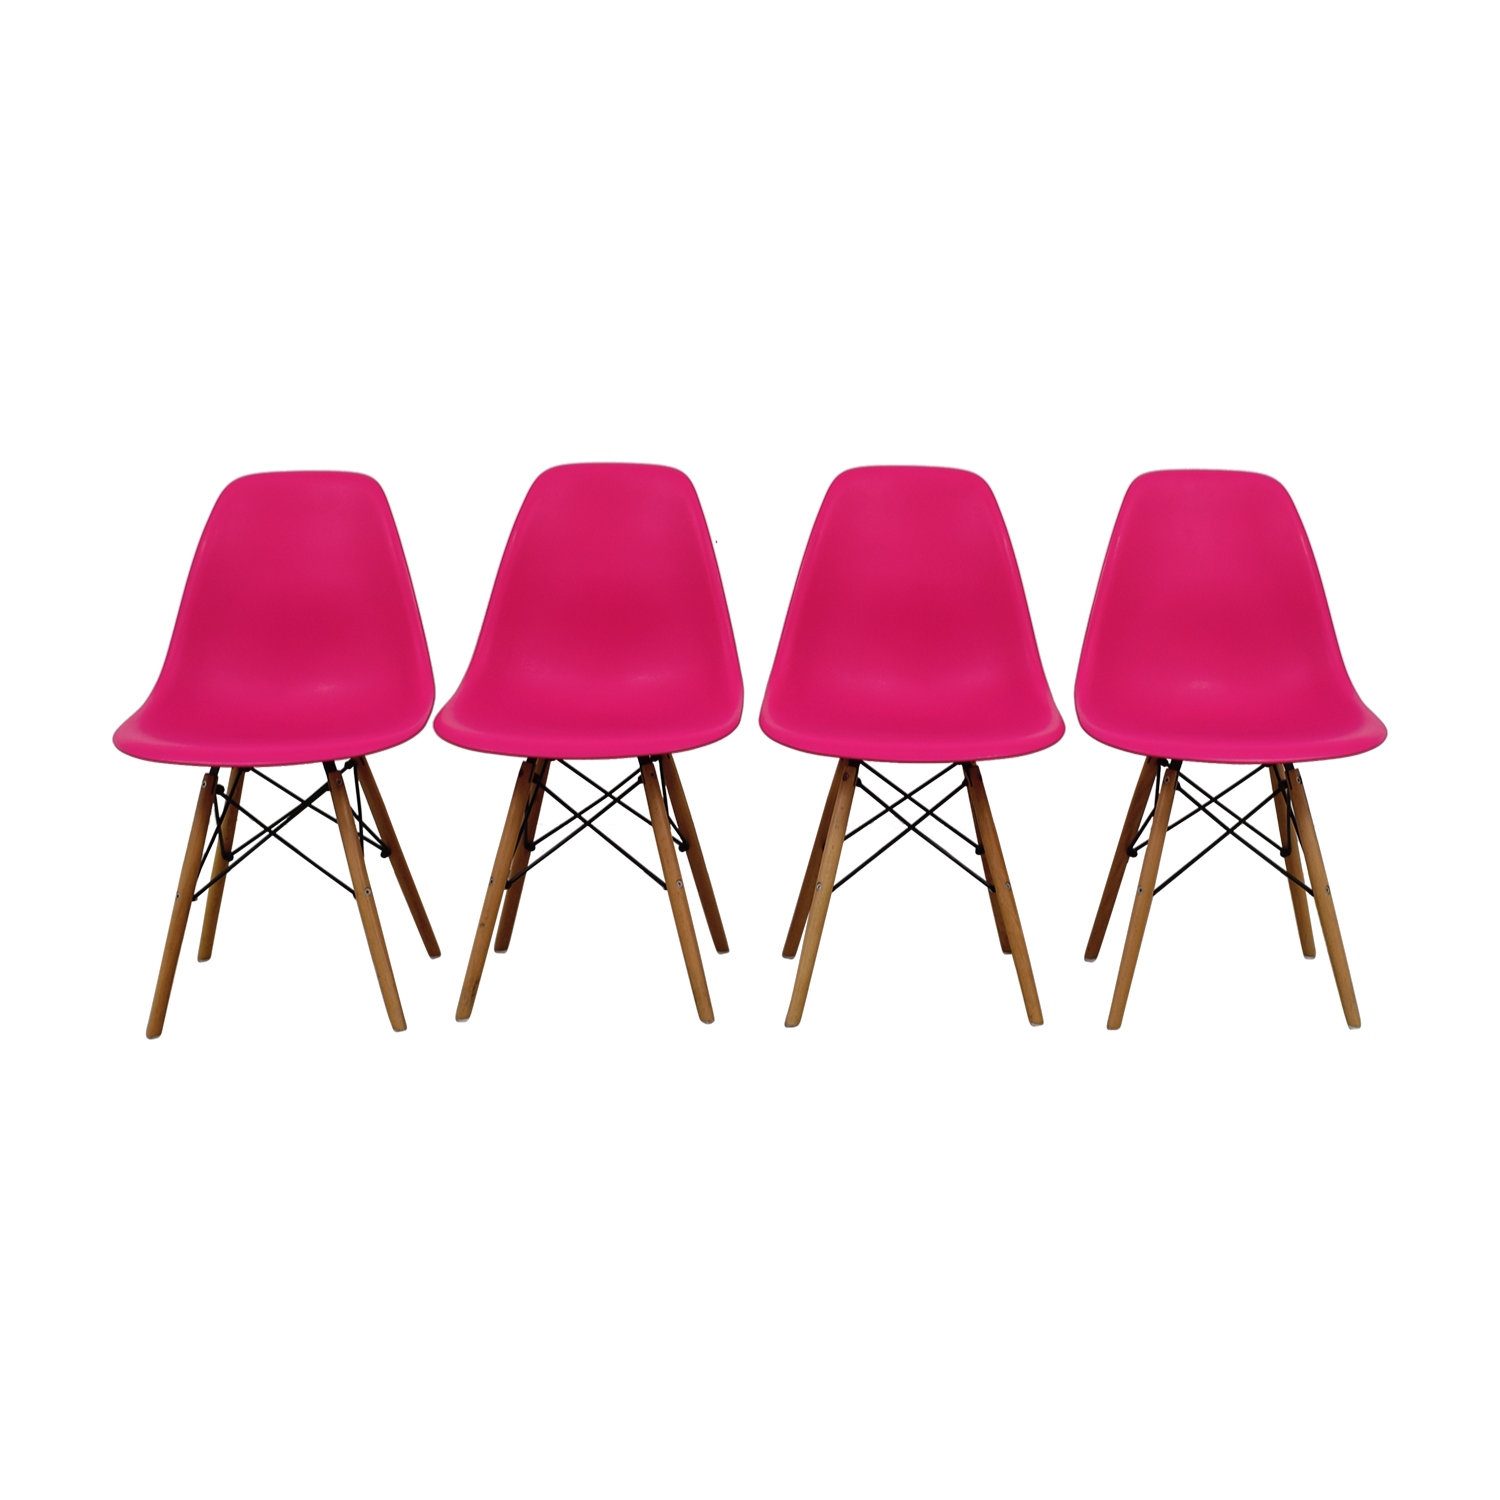 90 Off Mid Century Hot Pink Dining Chairs Chairs